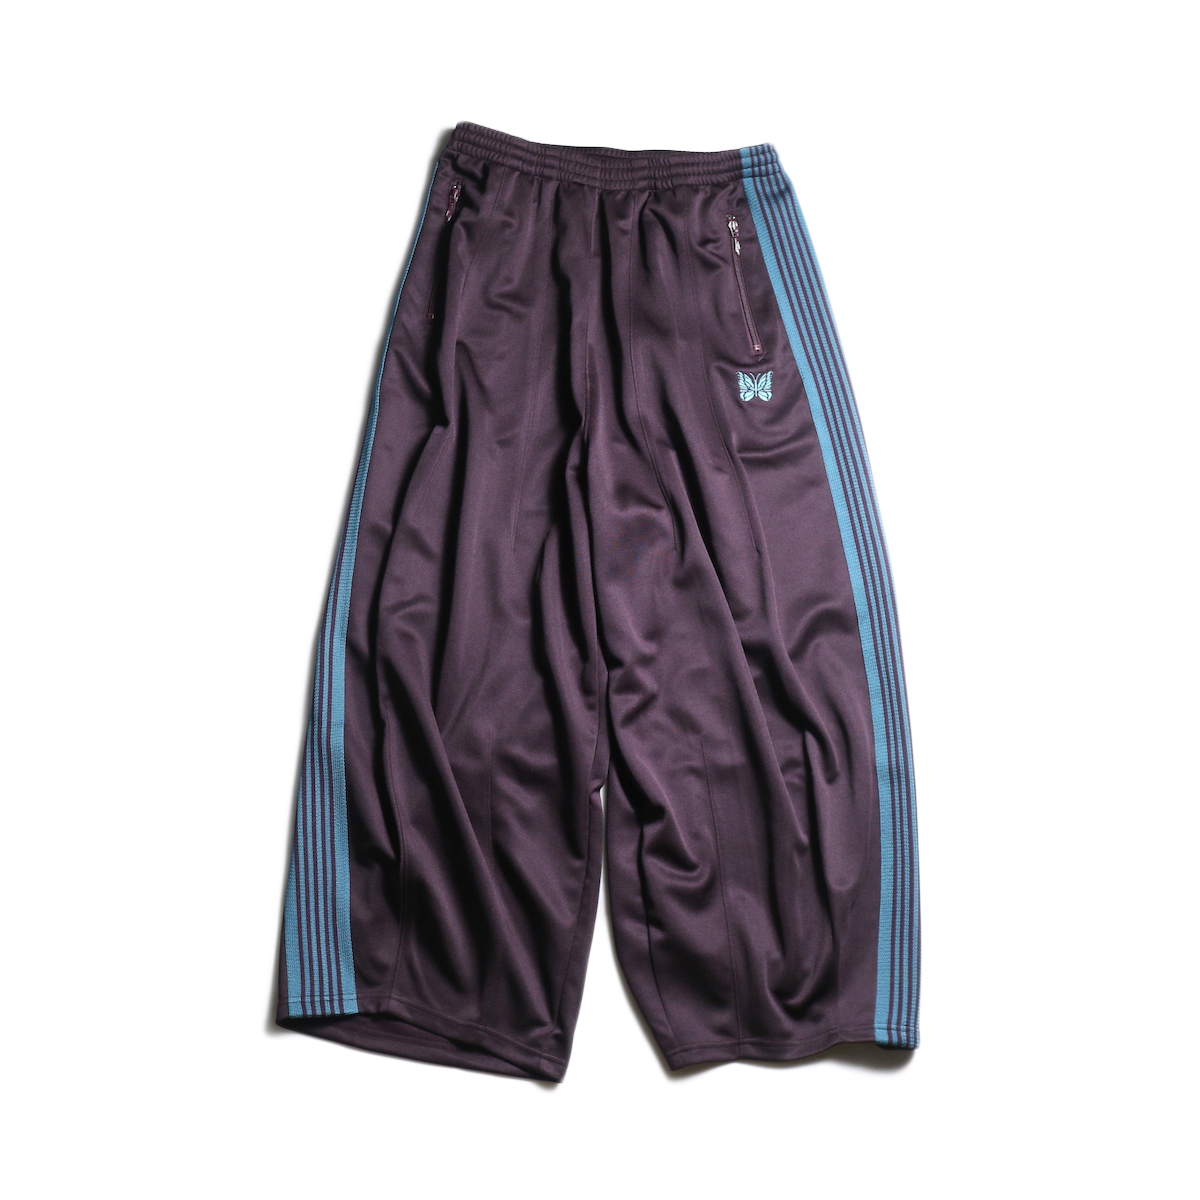 Needles / H.D. TRACK PANT - POLY SMOOTH (Bordeaux)